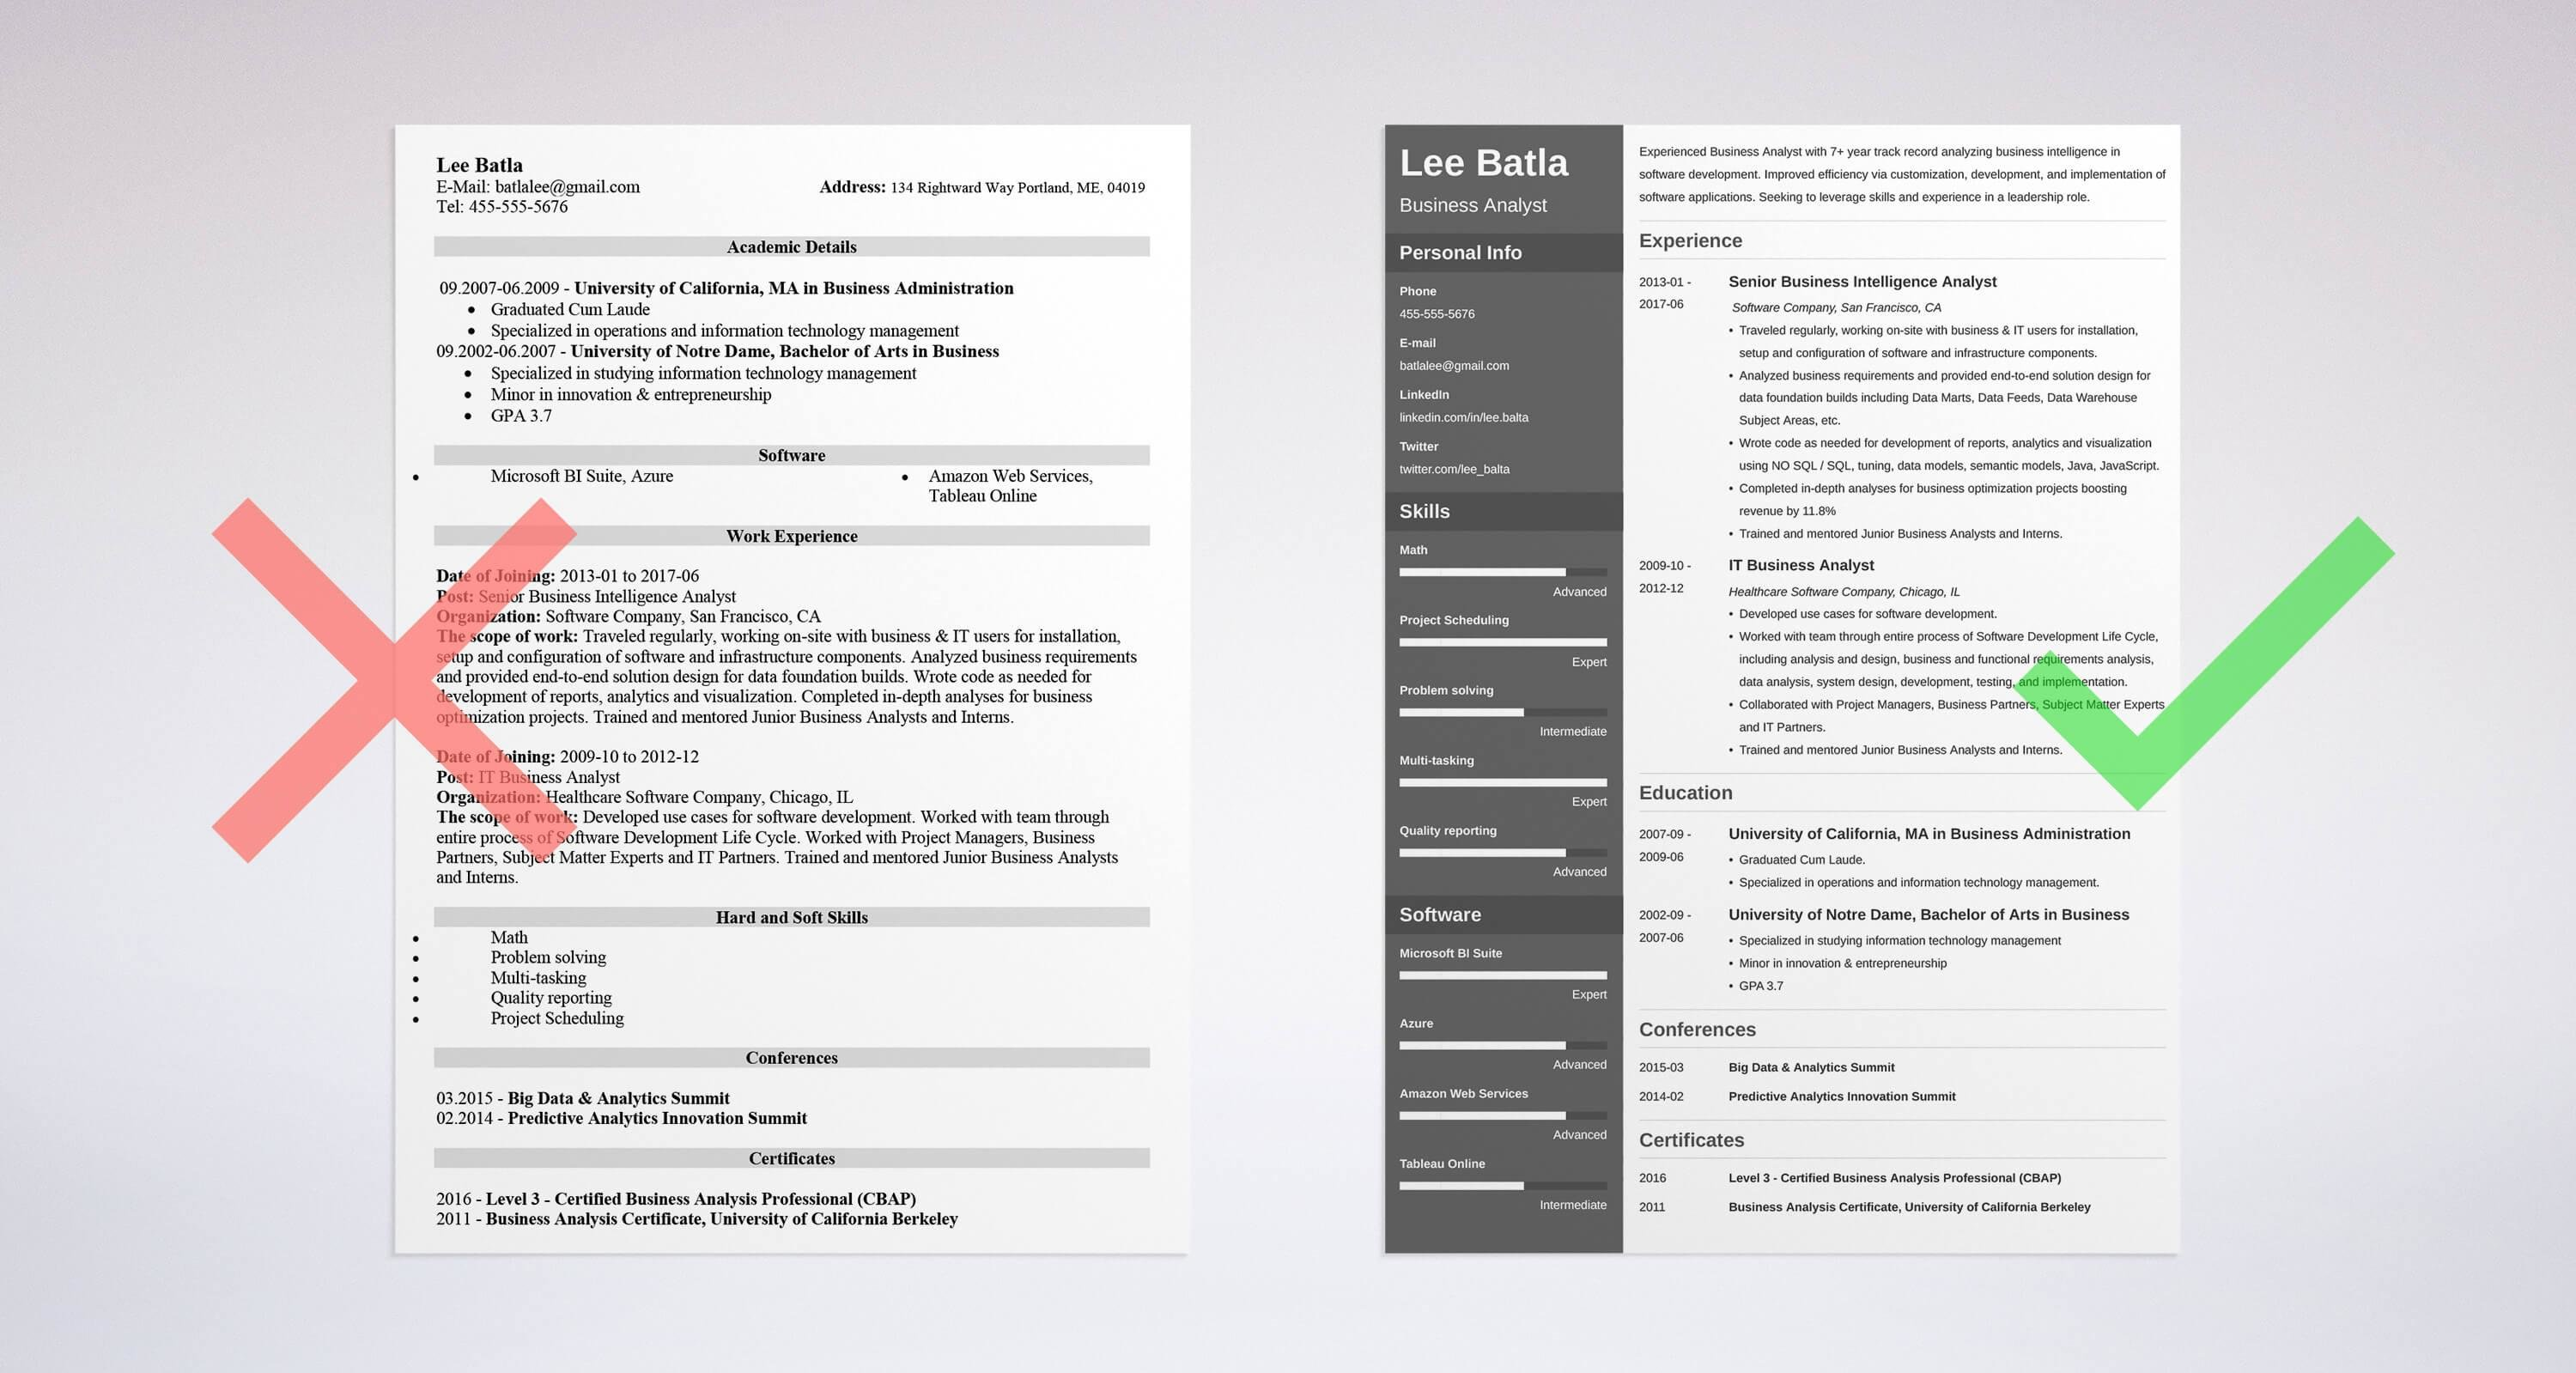 Delightful Business Analyst Resume: Sample U0026 Complete Guide [+20 Examples]